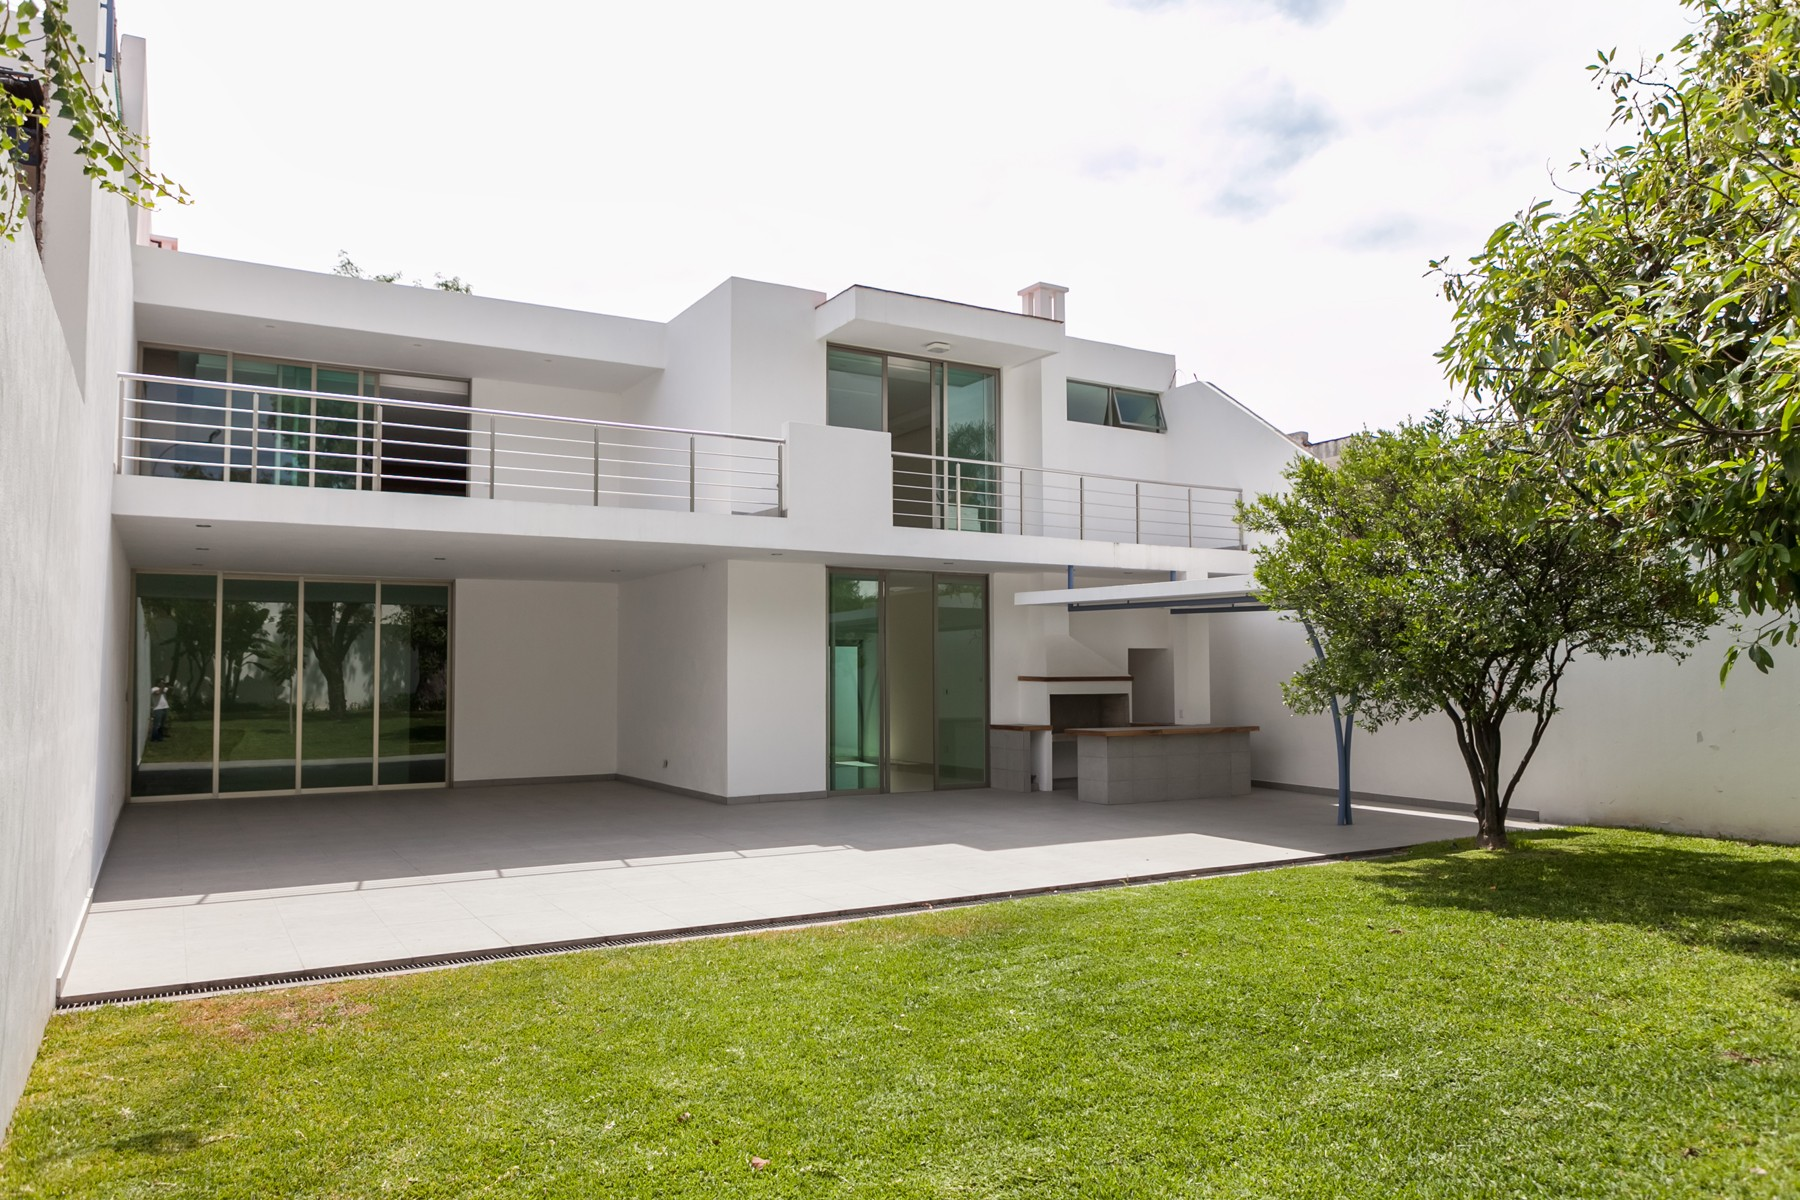 Single Family Home for Sale at CASA FIRMAMENTO FIRMAMENTO 670 Guadalajara, Jalisco 44520 Mexico